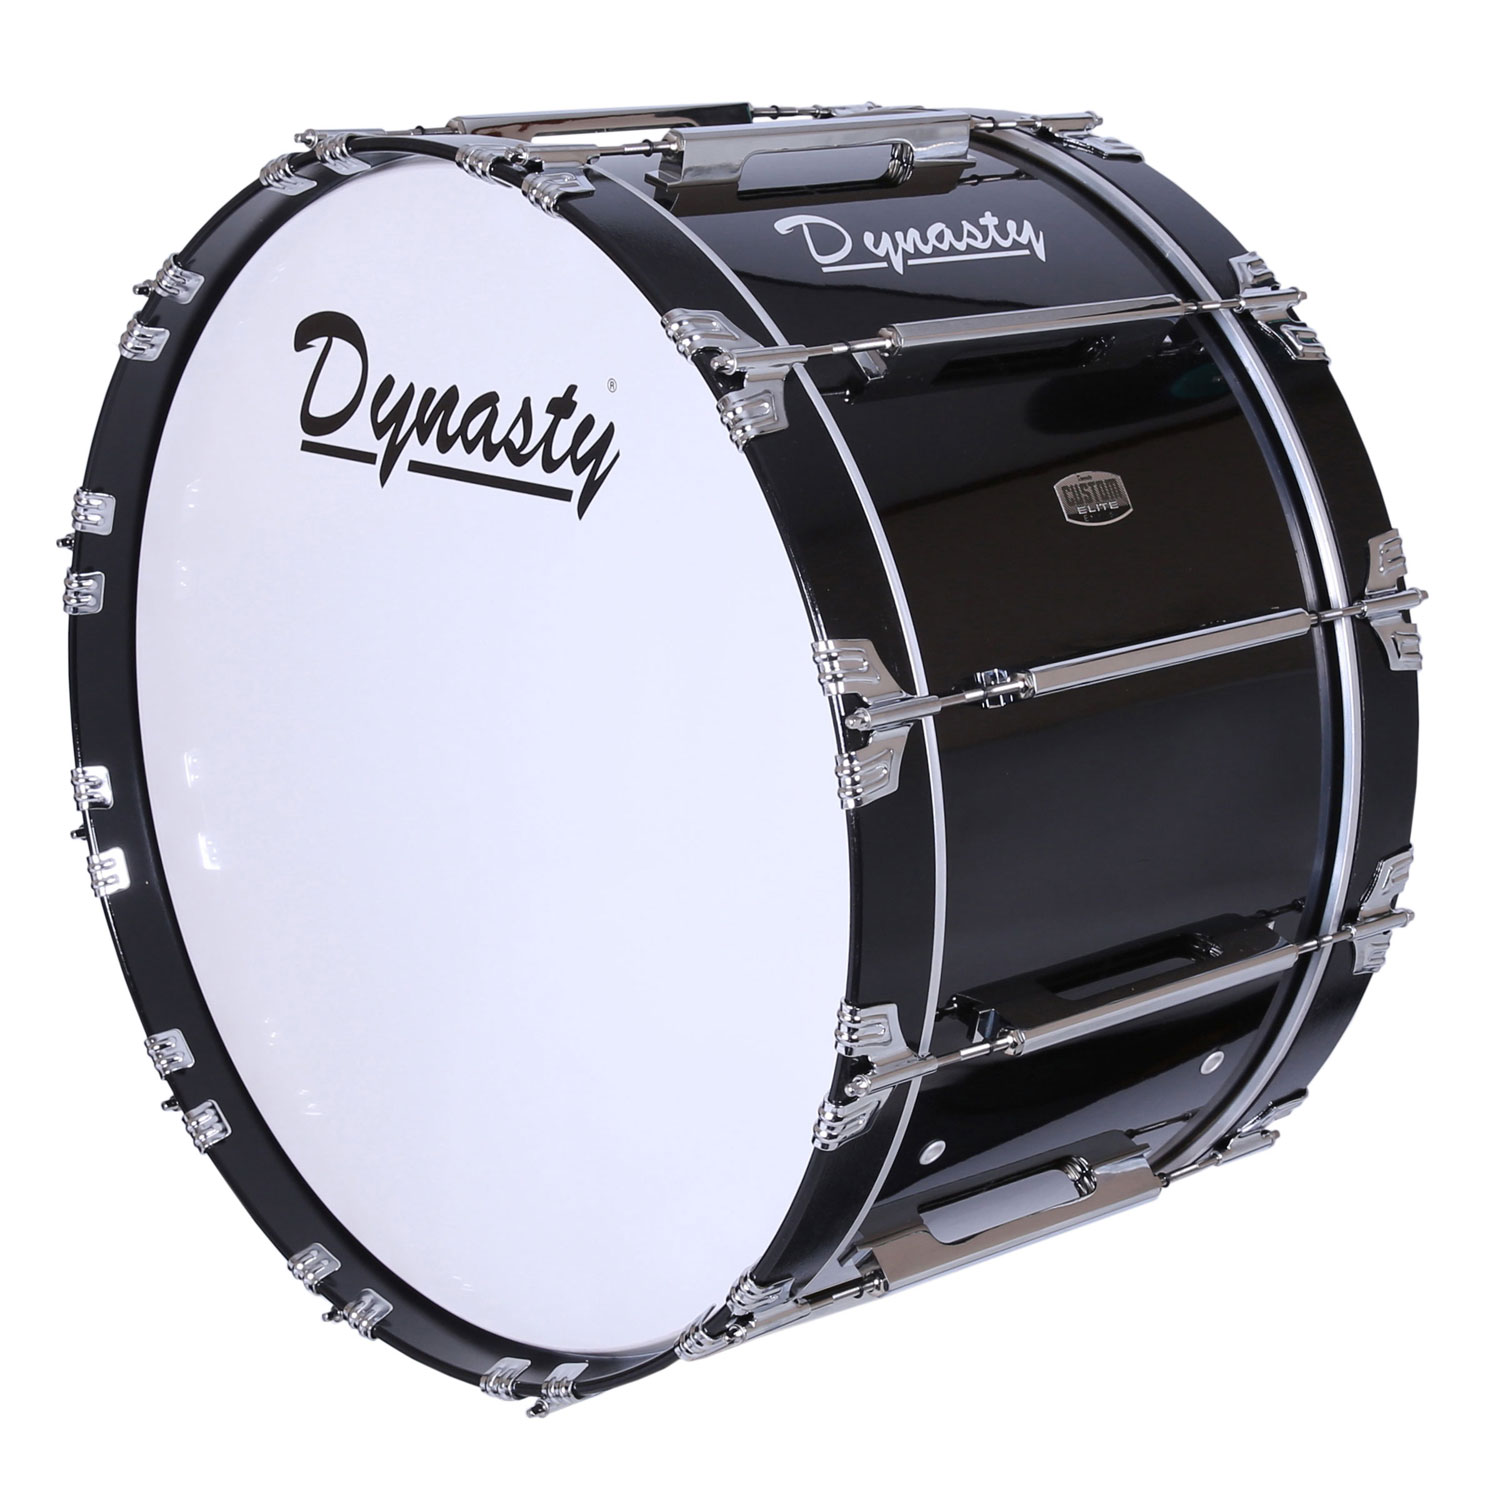 "Dynasty 26"" Custom Elite Marching Bass Drum in Black/Chrome"